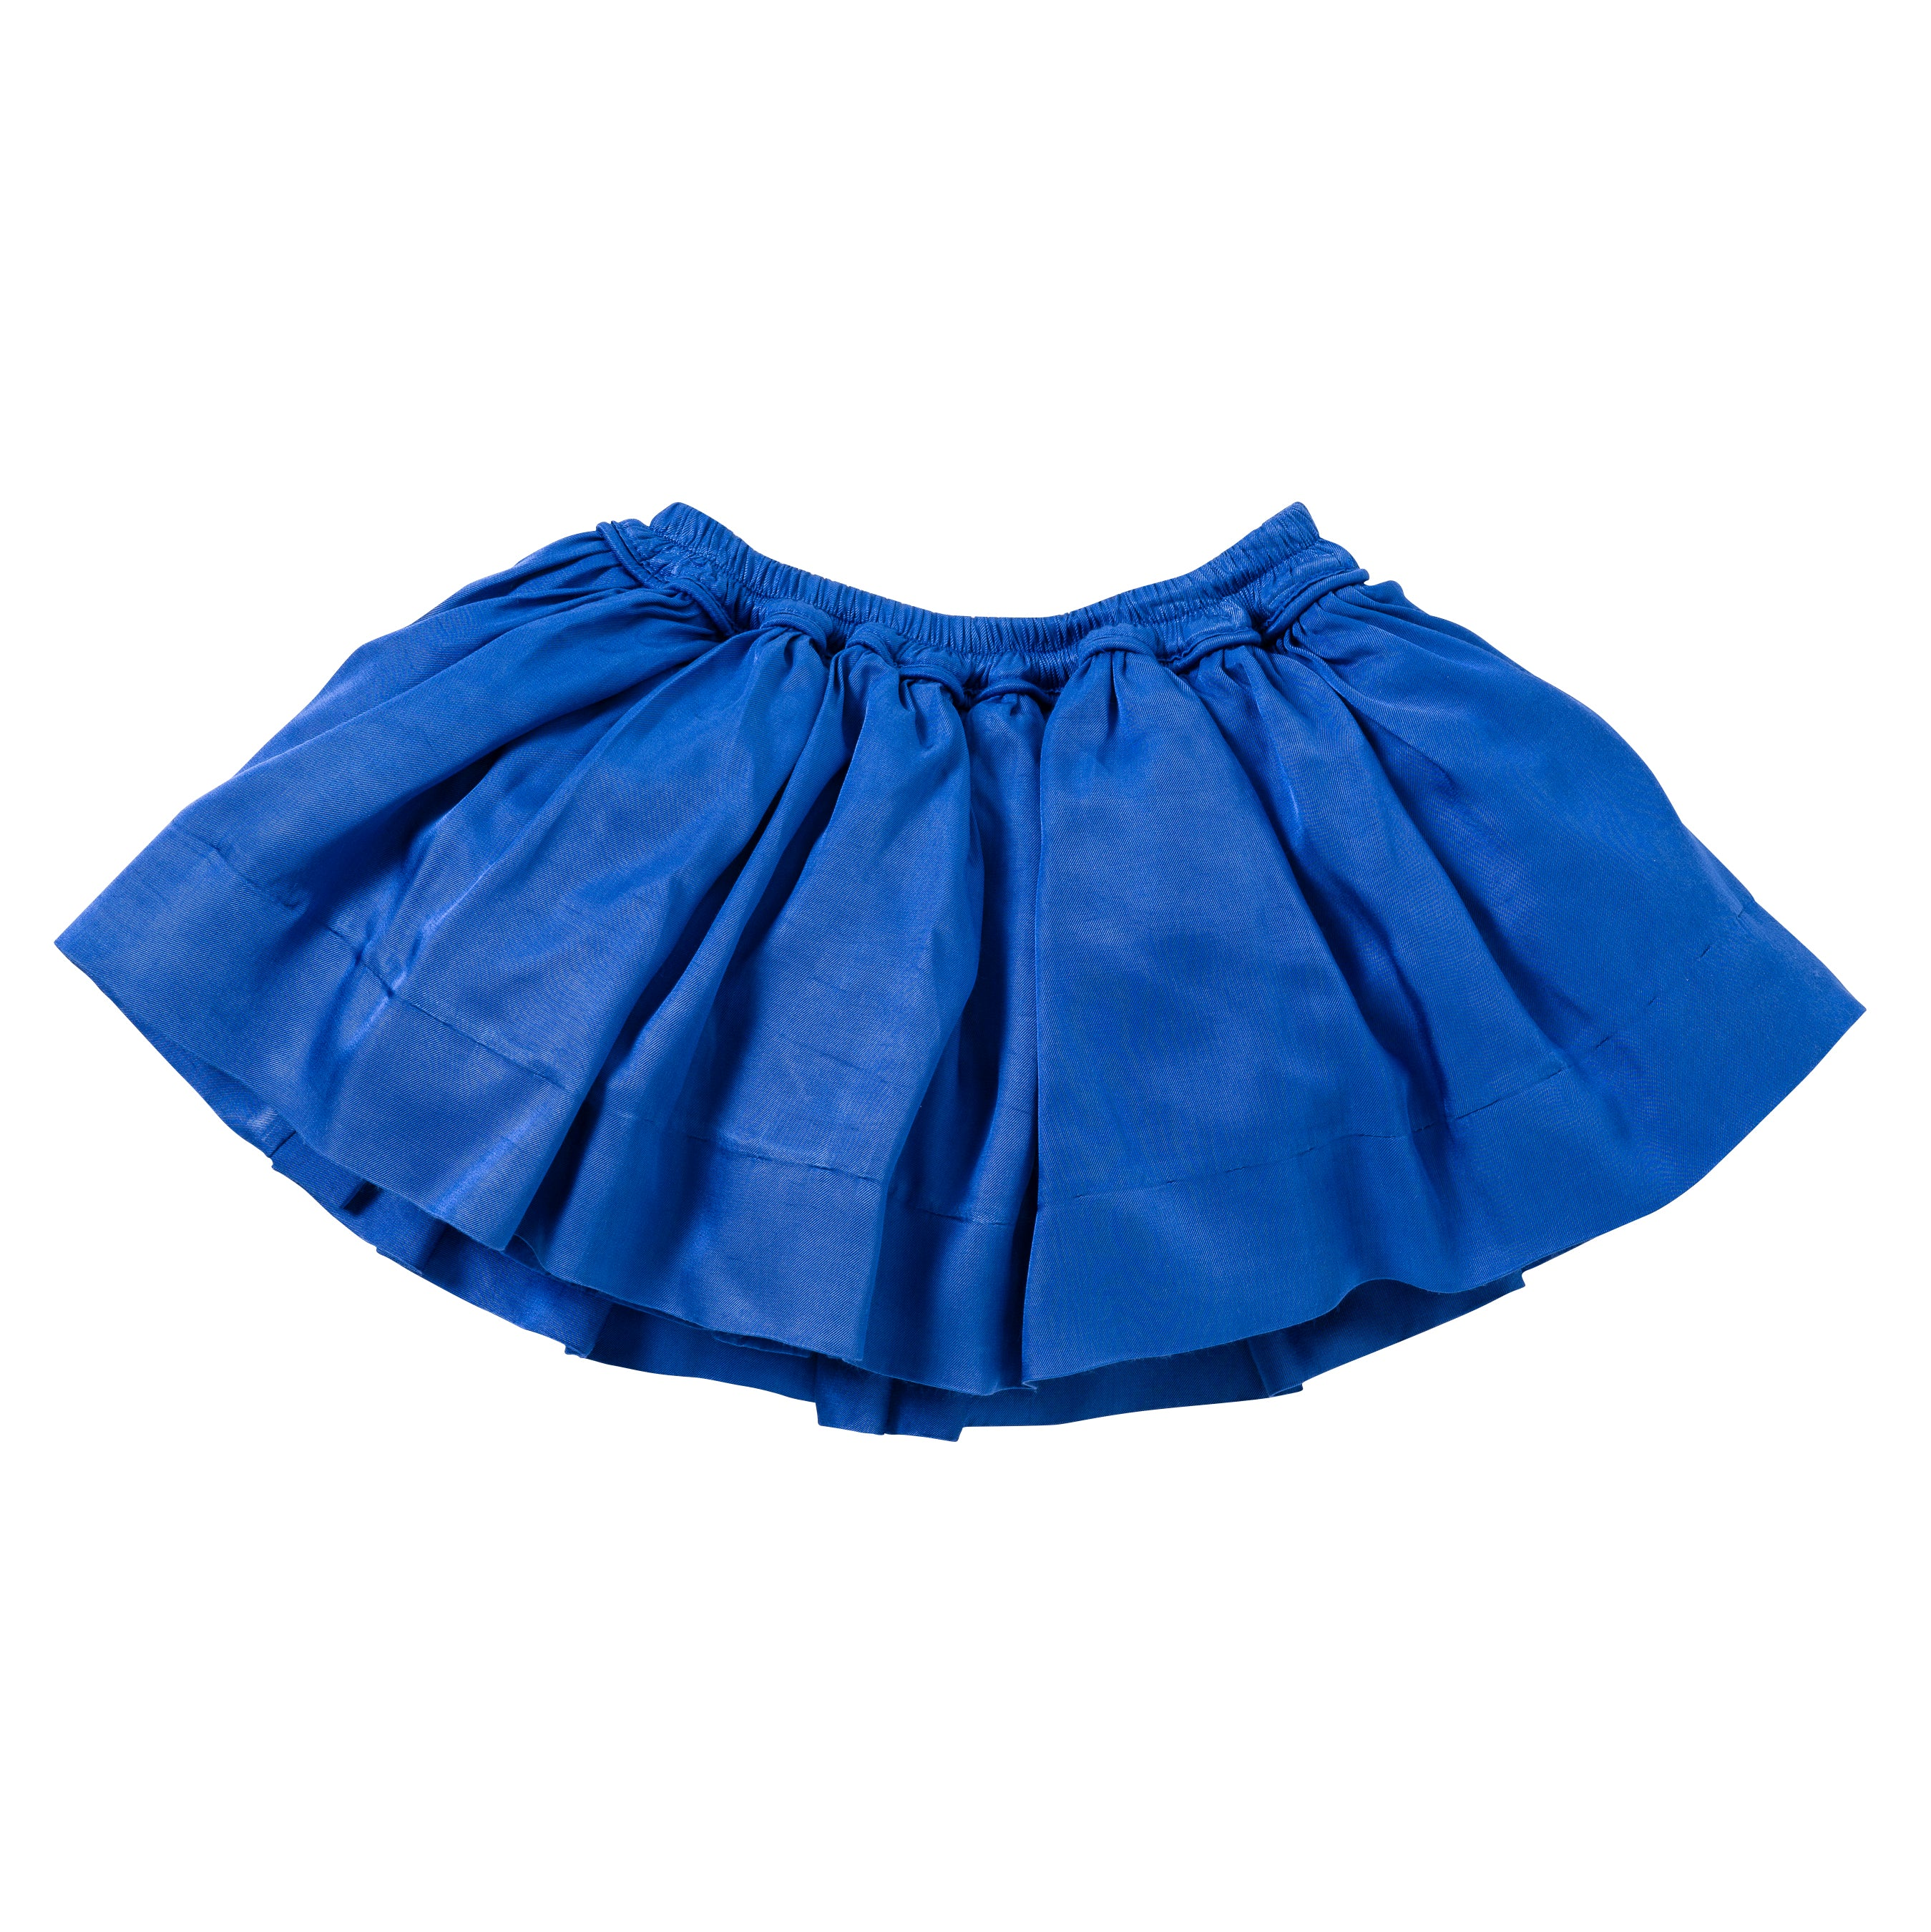 Pocket Skirt in Blue